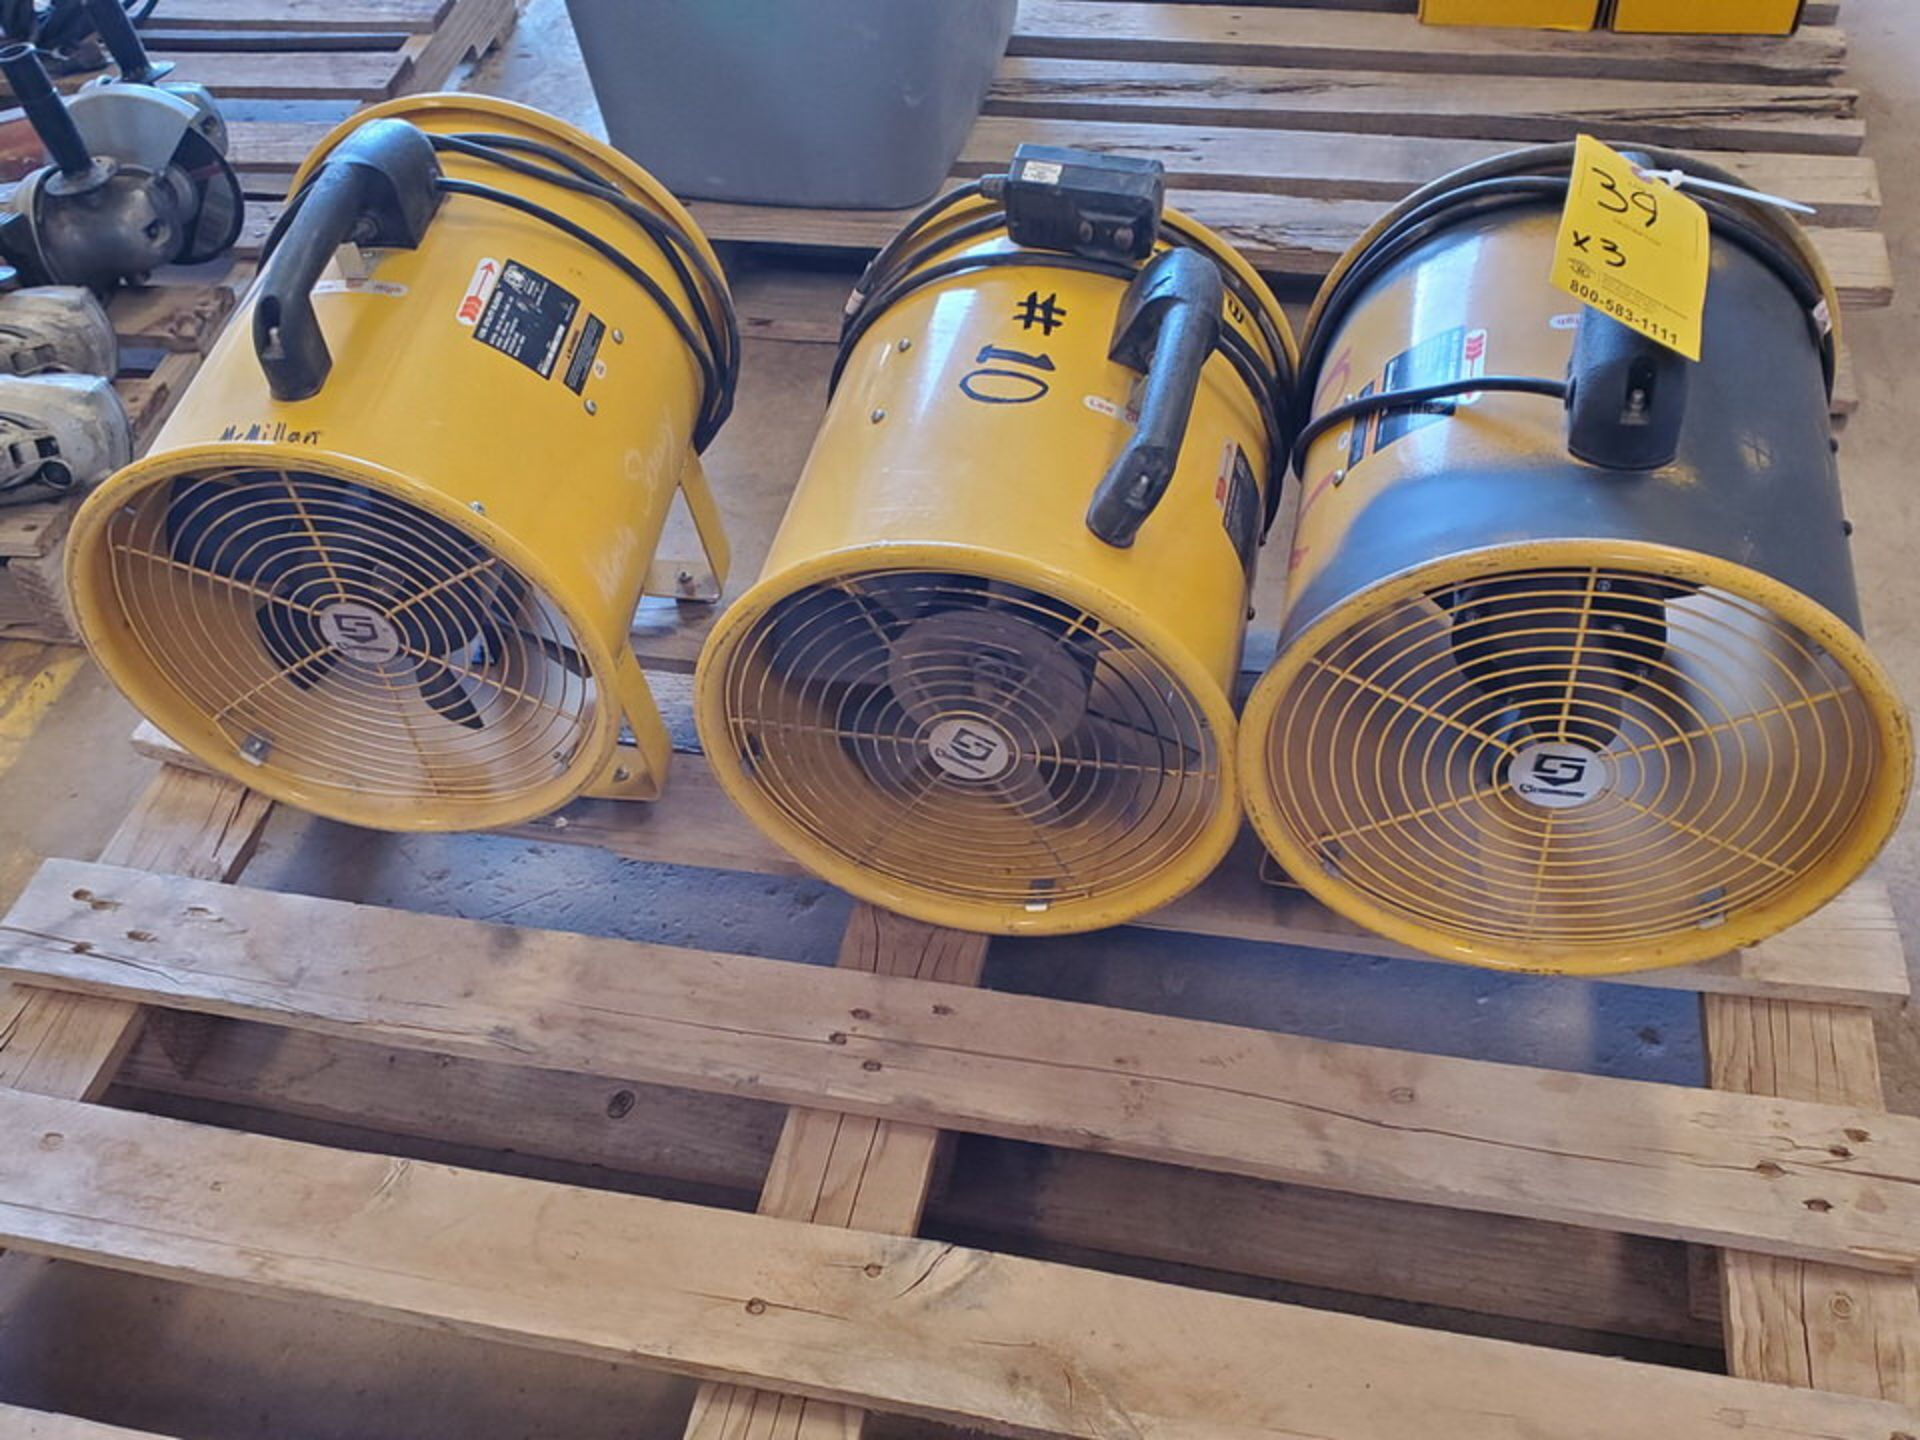 """Strongway (3) 12"""" Utility Blowers 120V, 430W, 1300RPM, 60HZ, 3.8A - Image 2 of 4"""